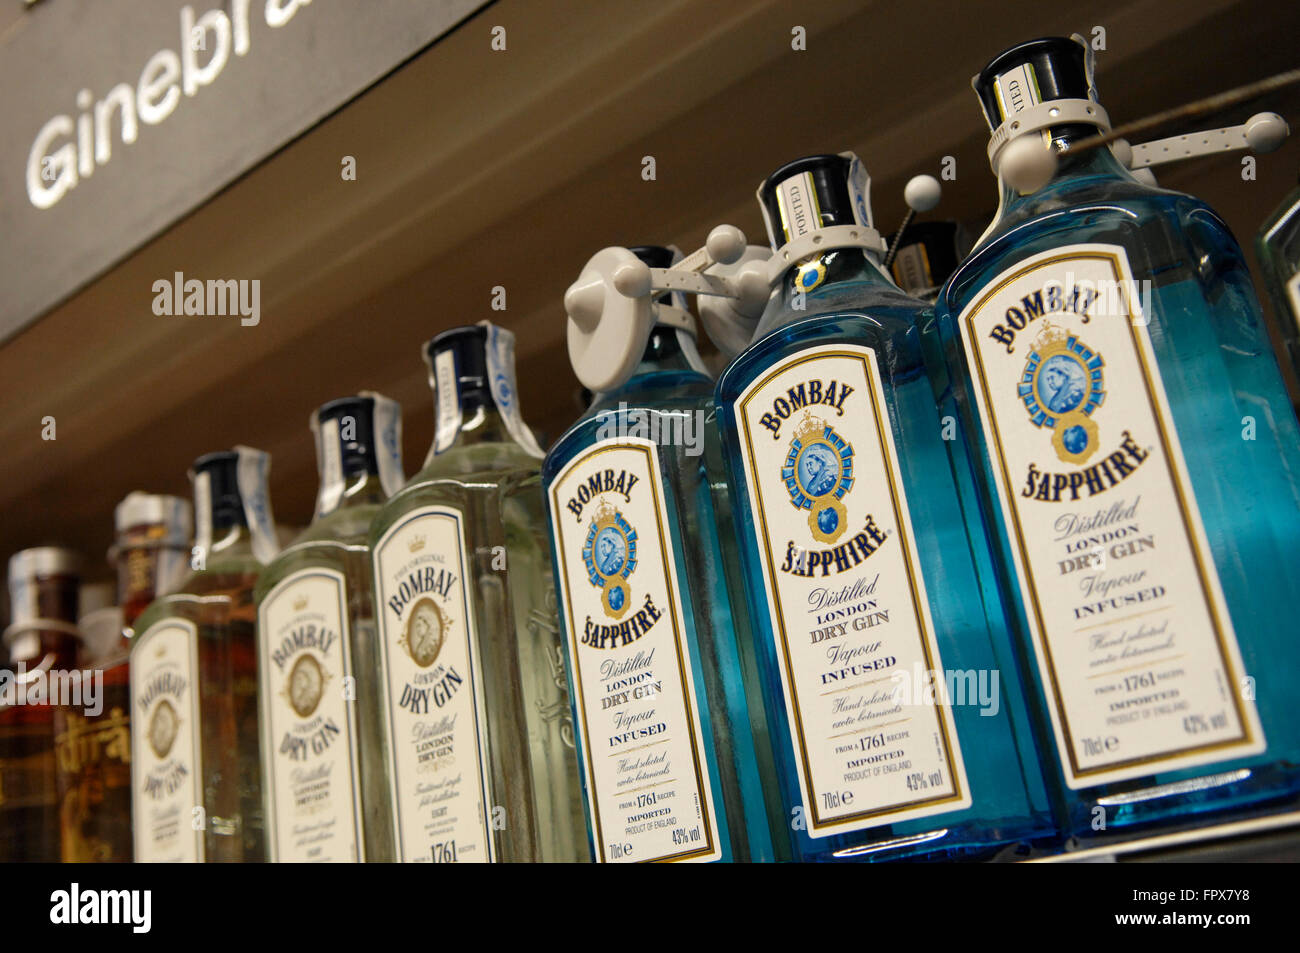 Bombay Sapphire Gin owned by Bacardi displayed at a Carrefour Supermarket Malaga Spain. - Stock Image